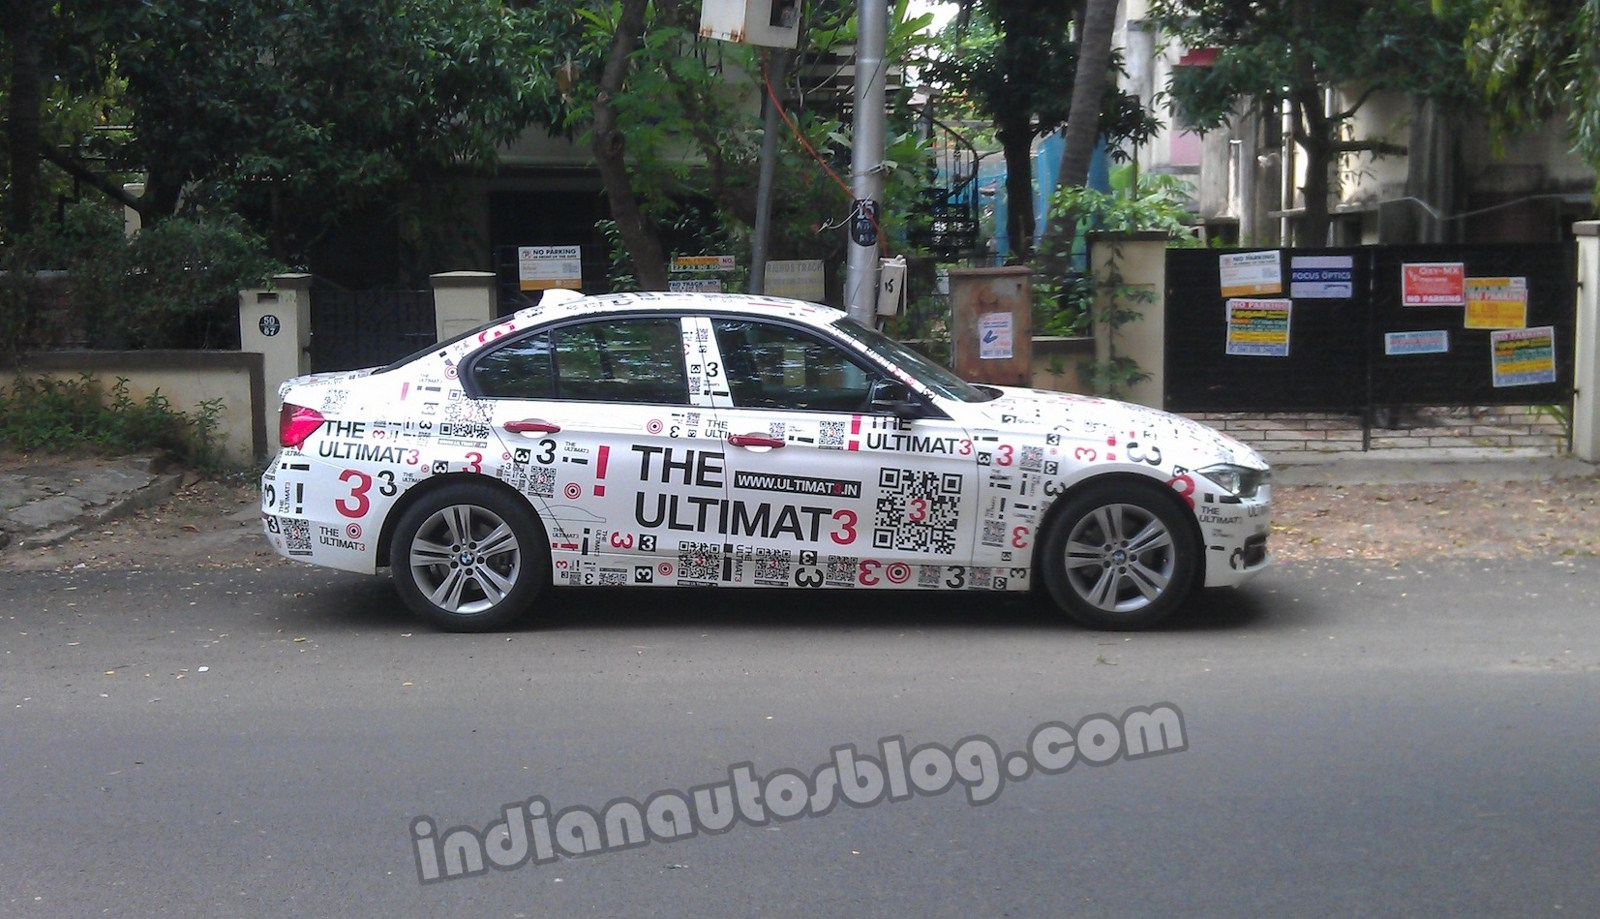 BMW 3 Series QR coded car